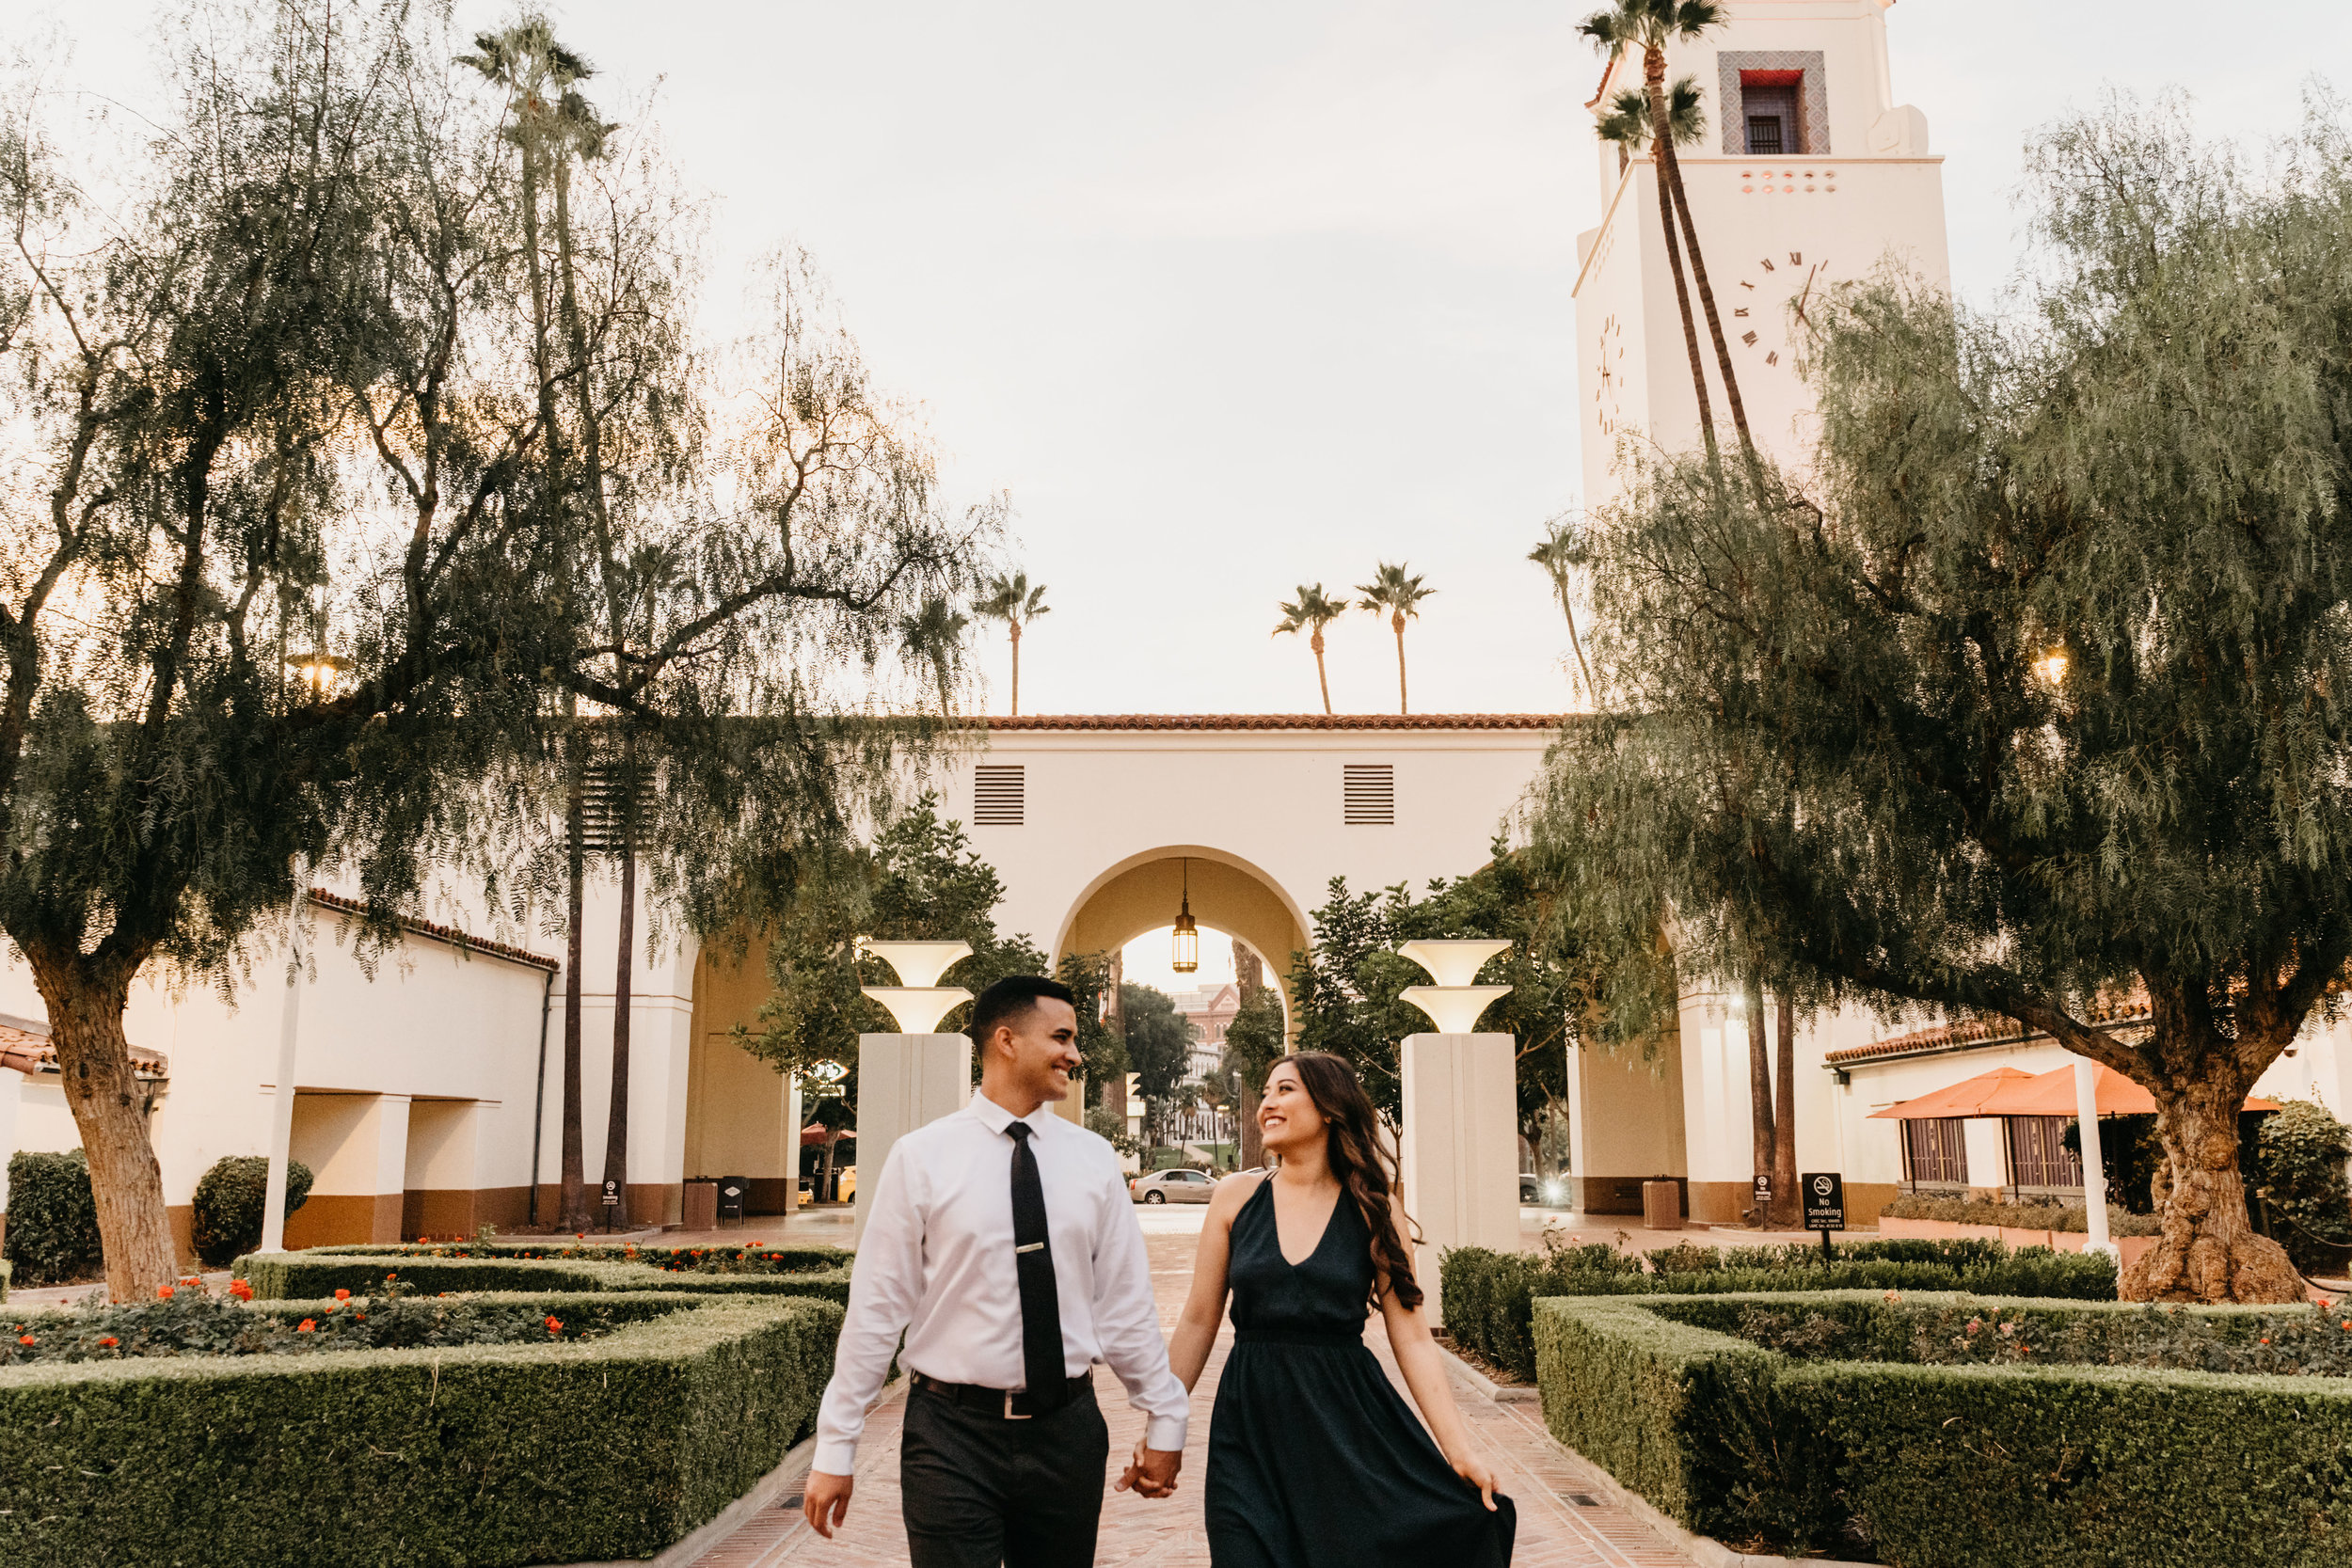 Southern California Los Angeles Orange County Wedding Photographer and Videographer - Capturing raw candid authentic and real emotions